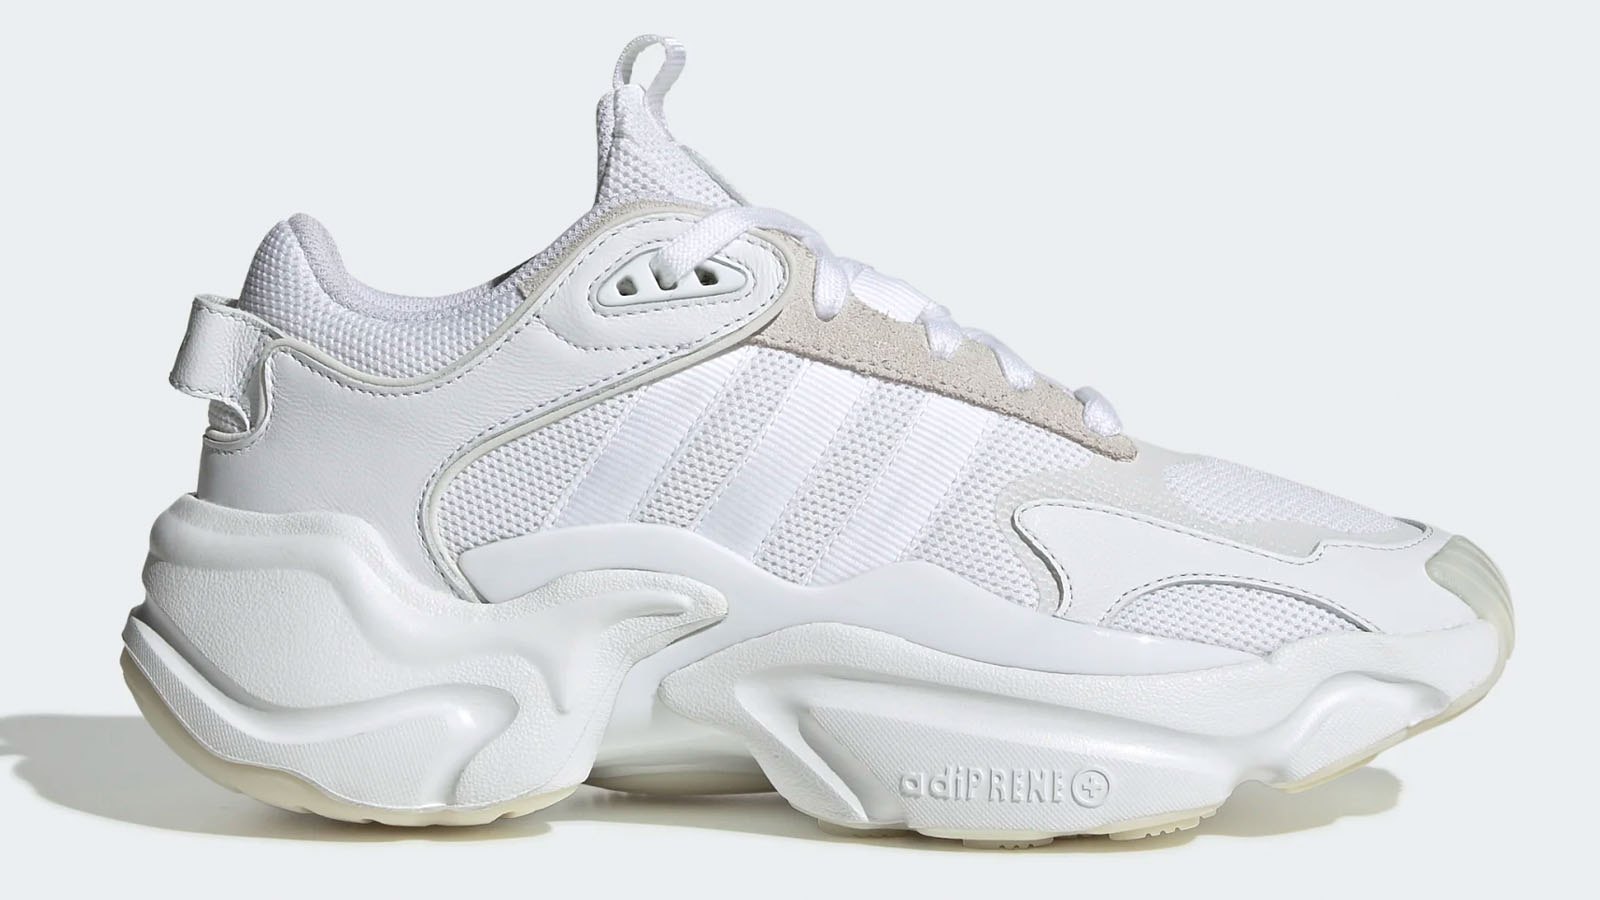 adidas magmur shoes